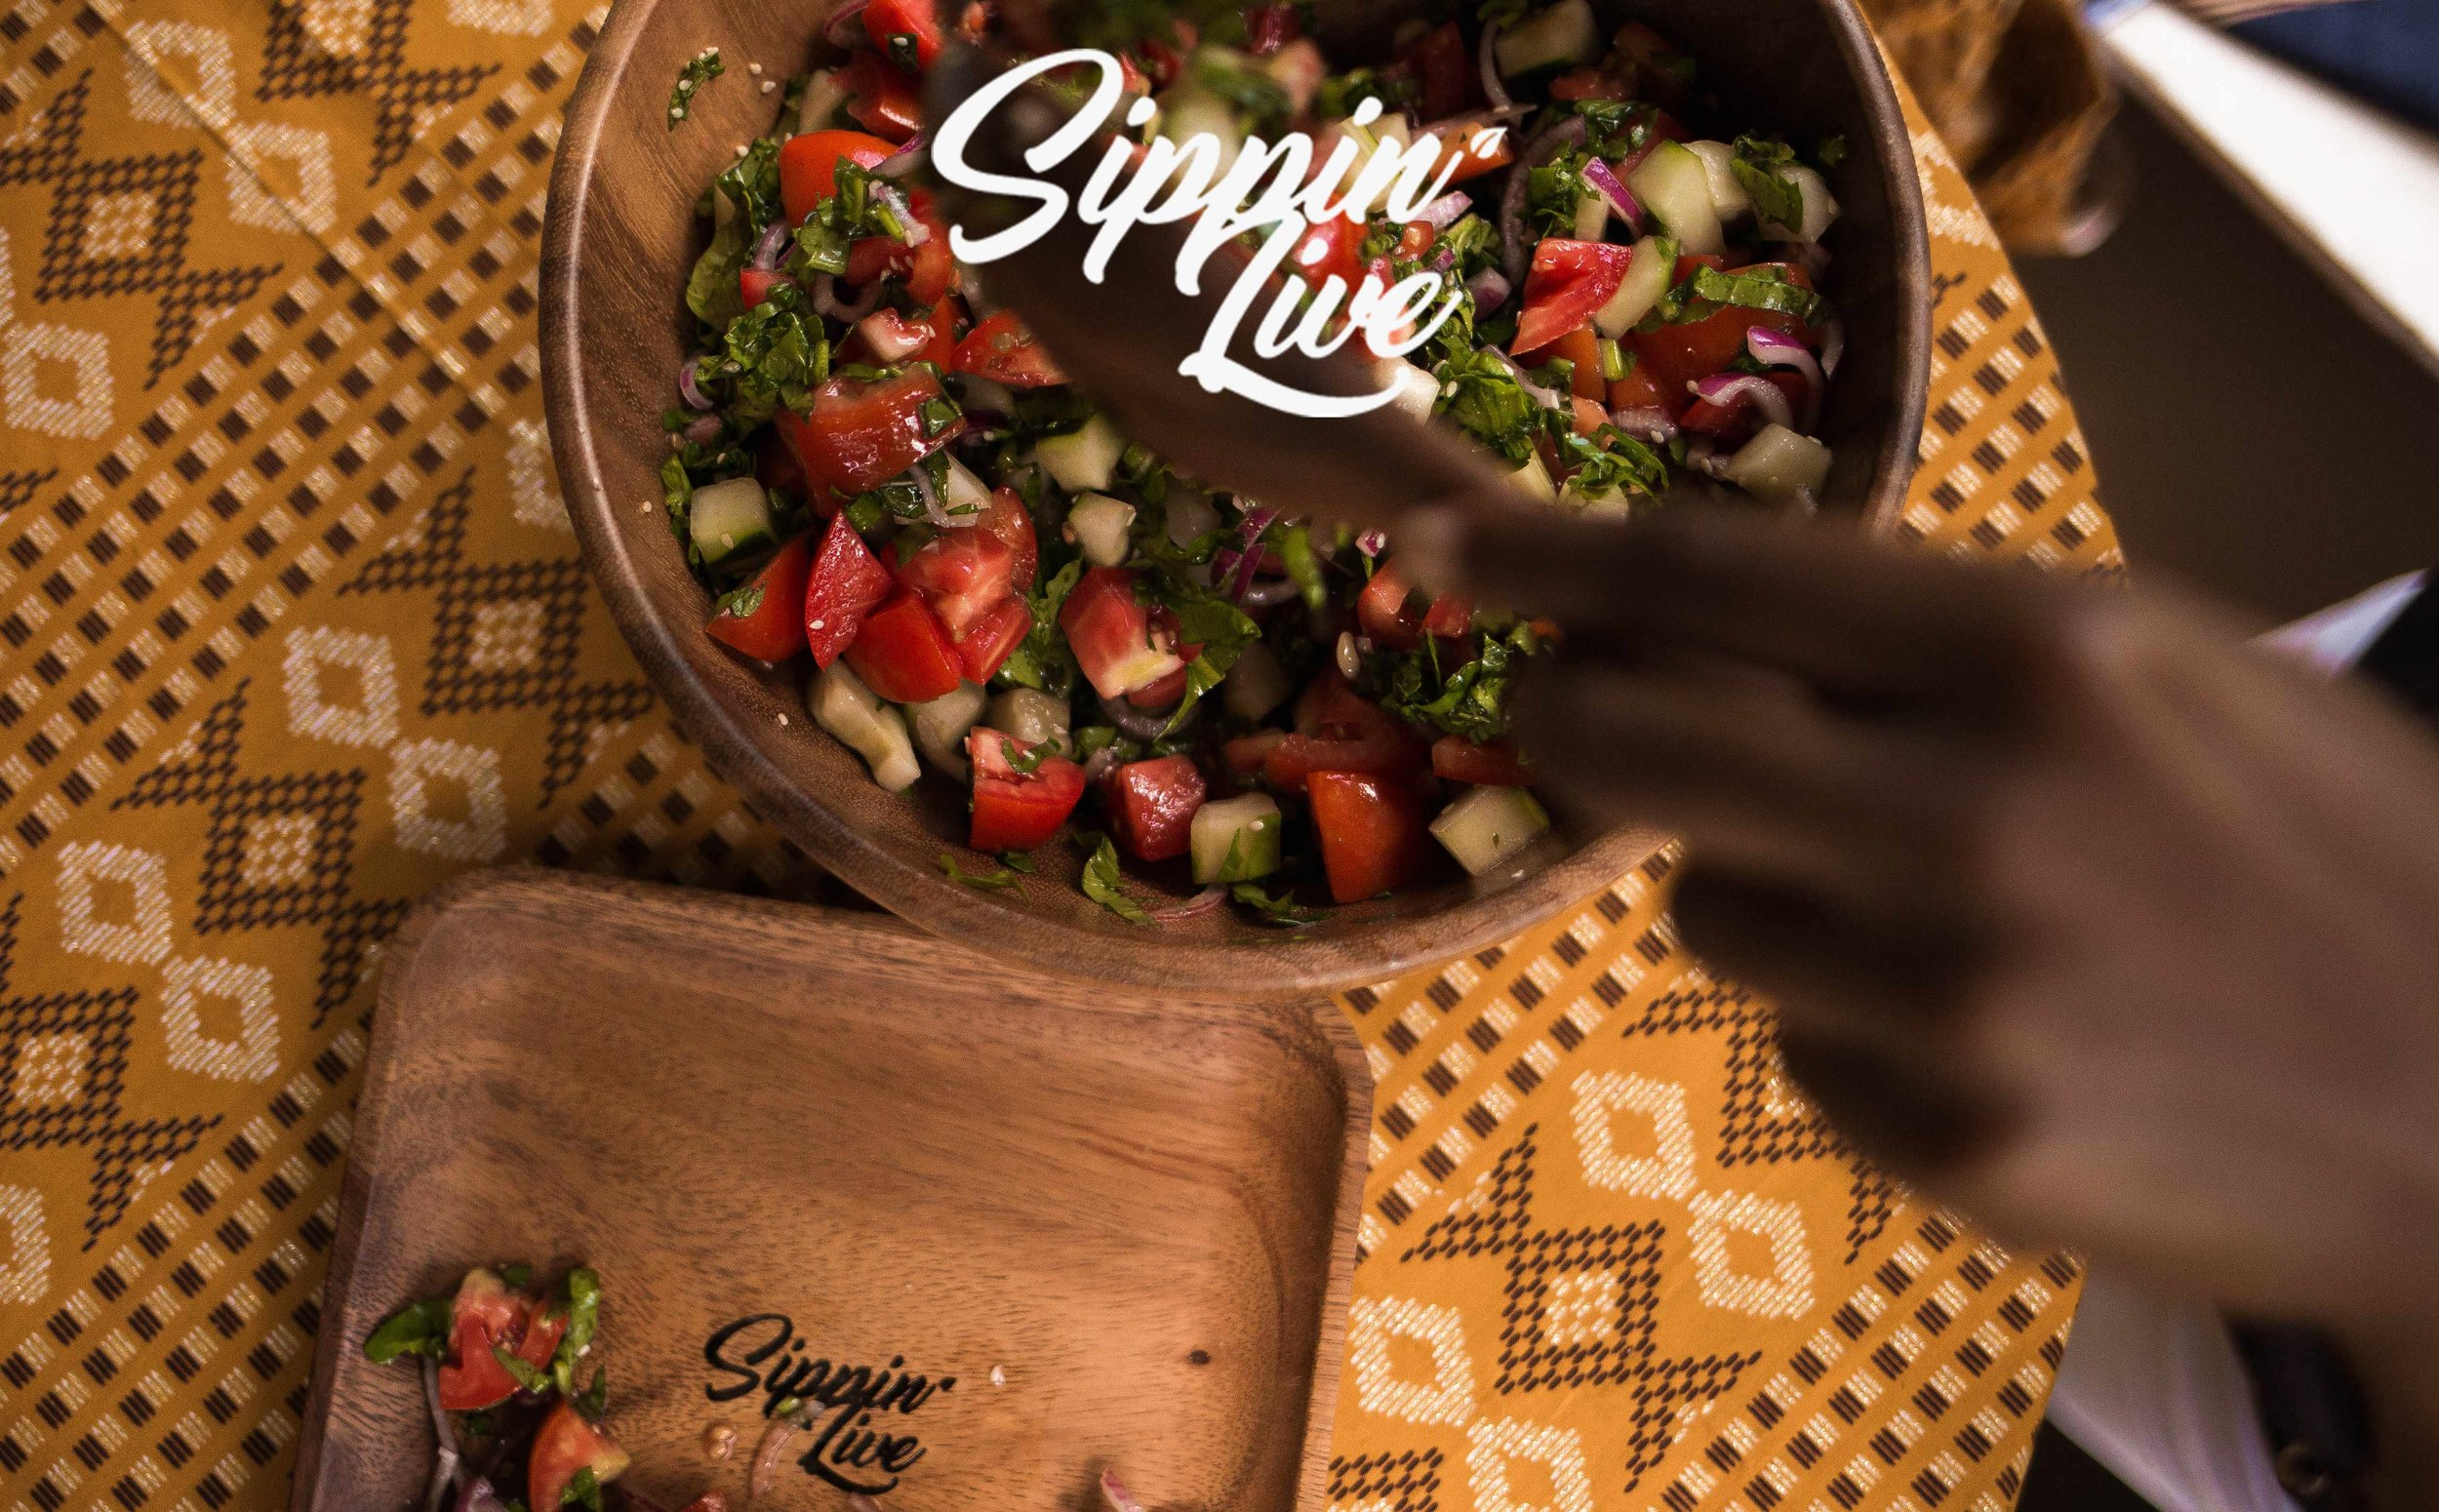 - ___This unique pop-up or workshop experience is known for its food, art and music fusion…___